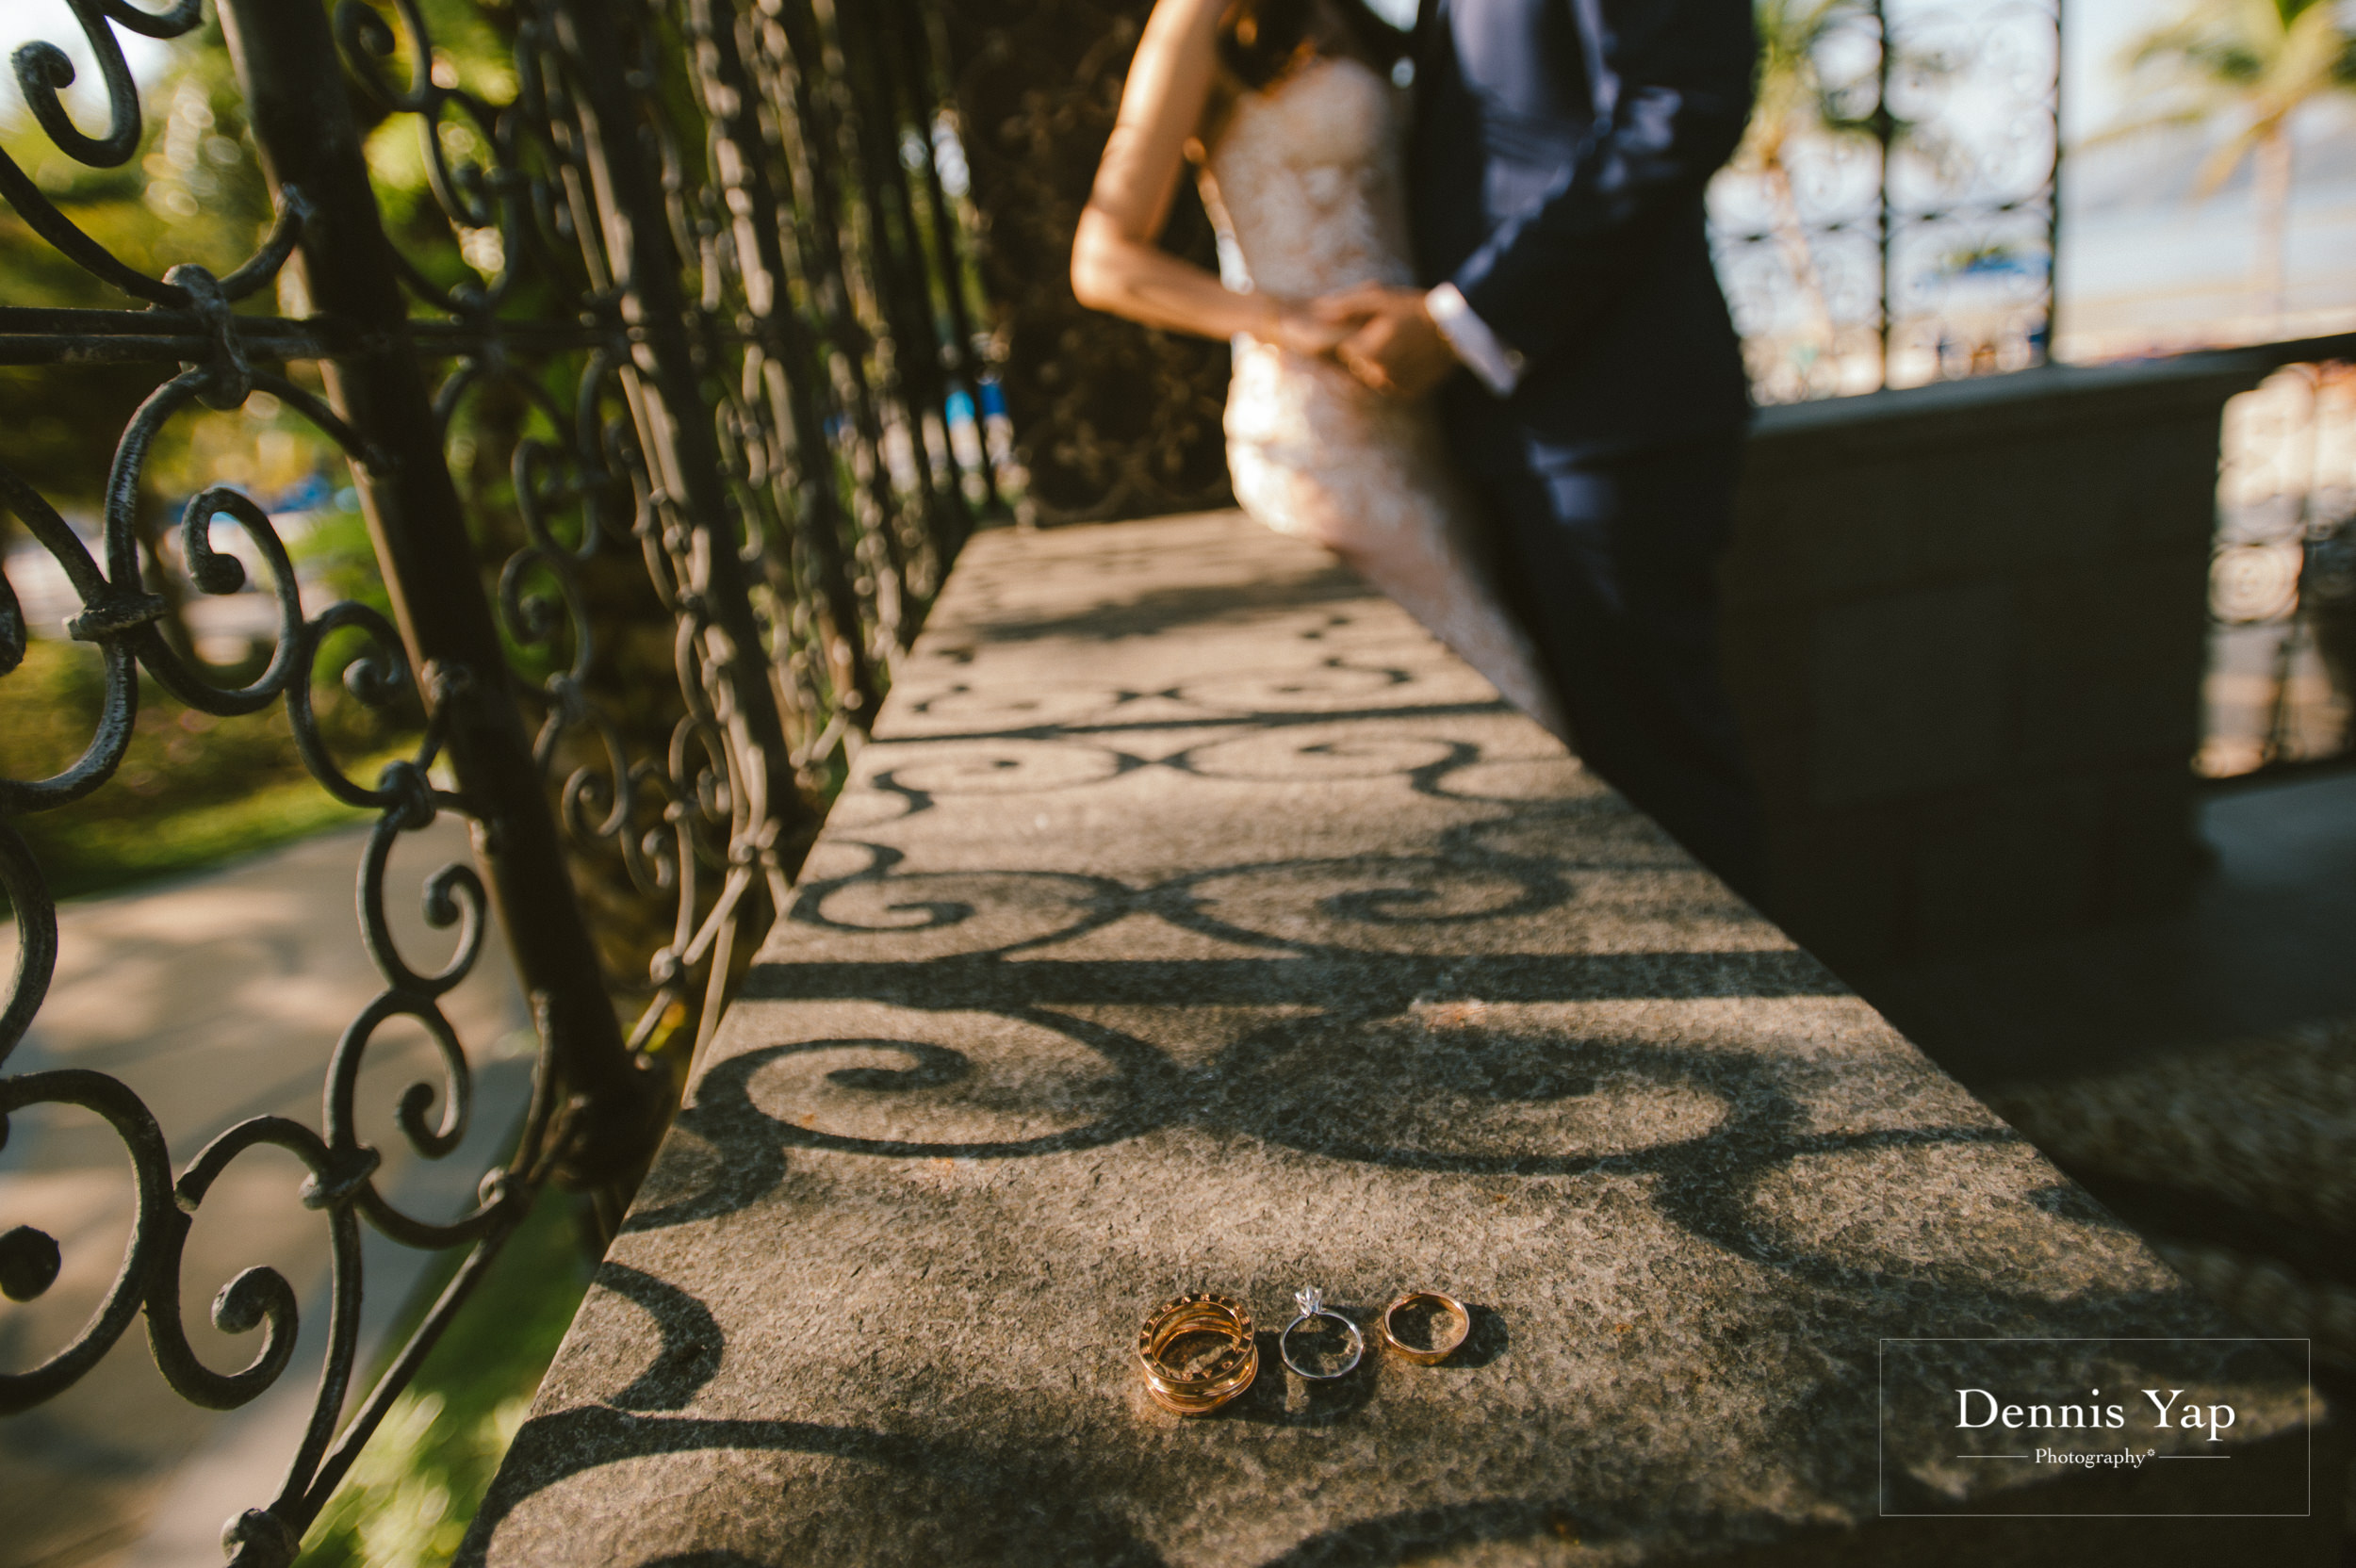 cross grace pre wedding st regis langkawi luxury style beloved dennis yap photography malaysia top wedding photographer dennis yap-15.jpg